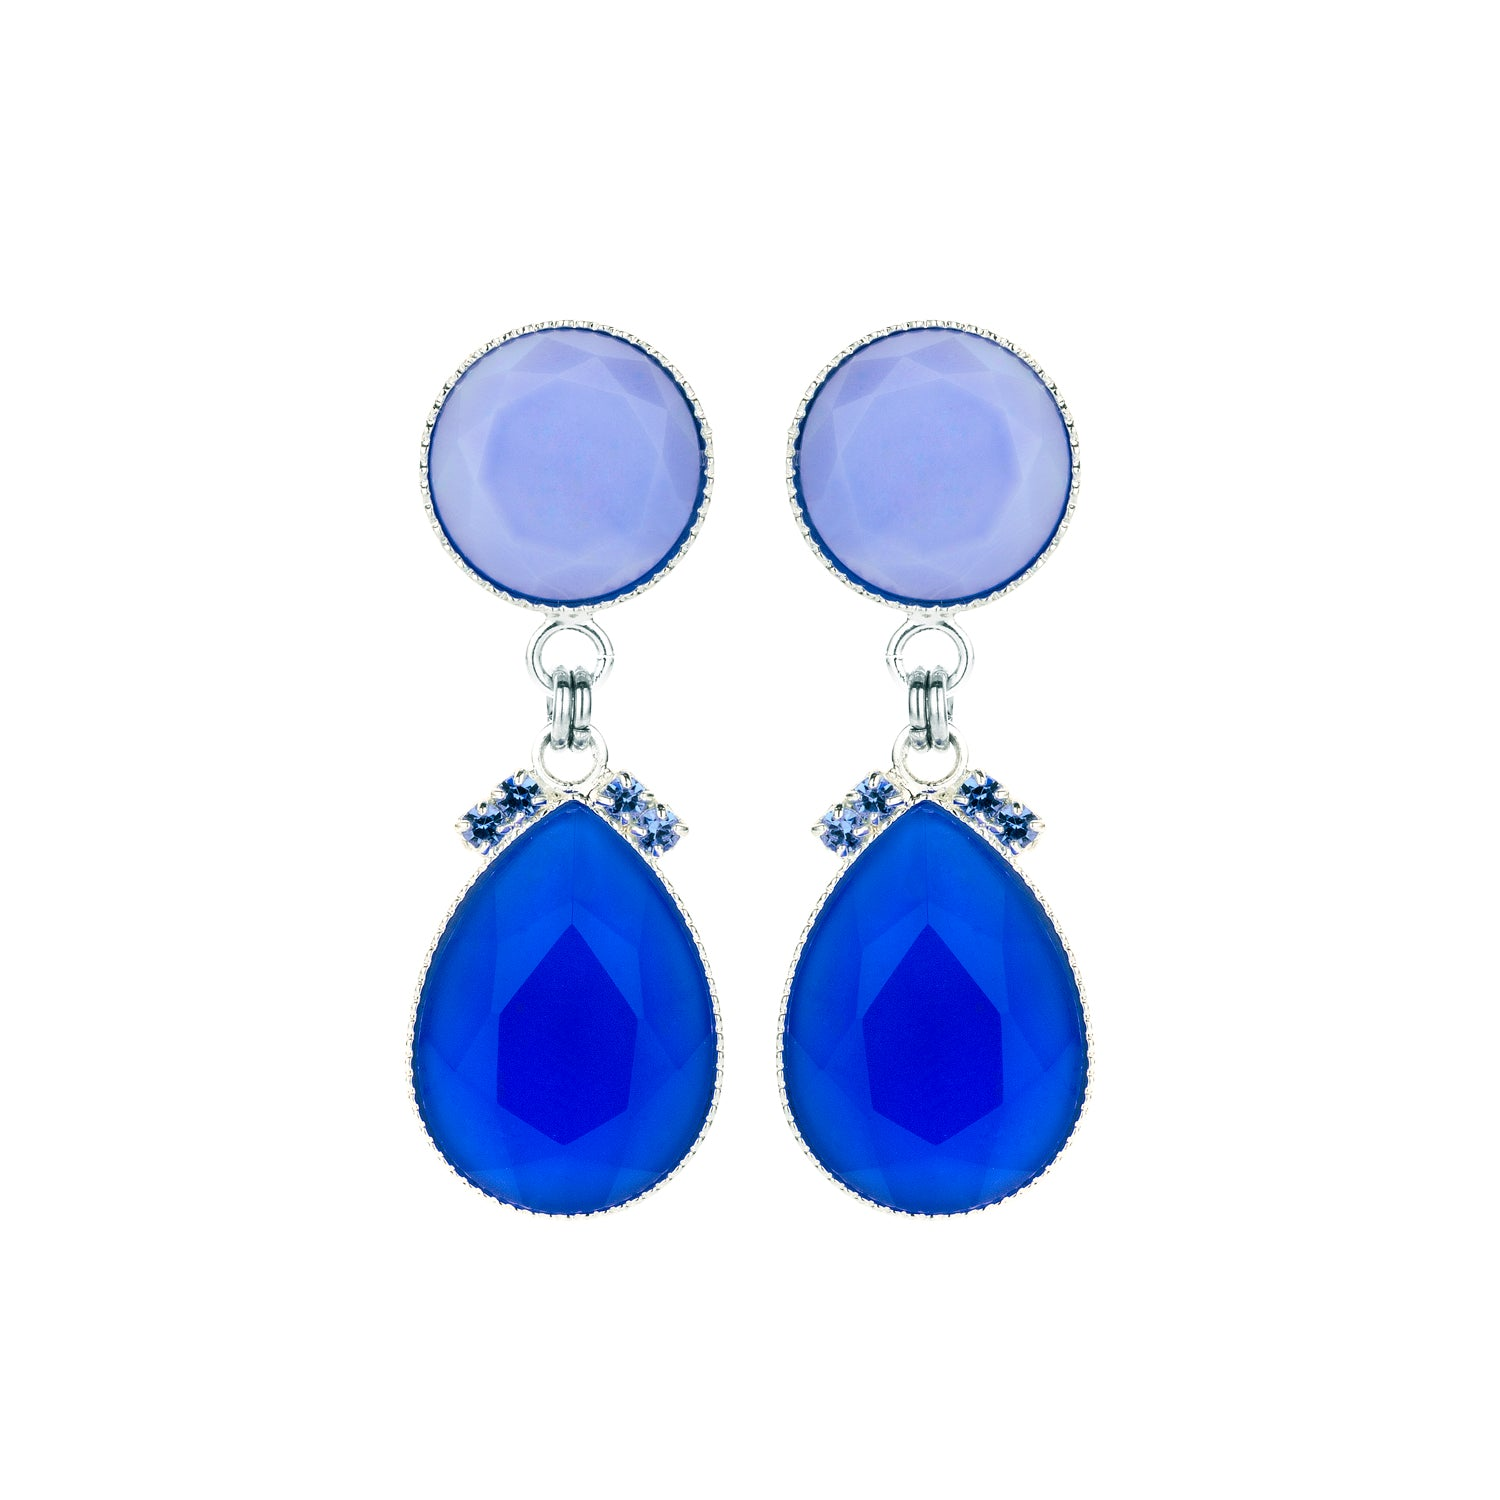 2 drops earring mini blue